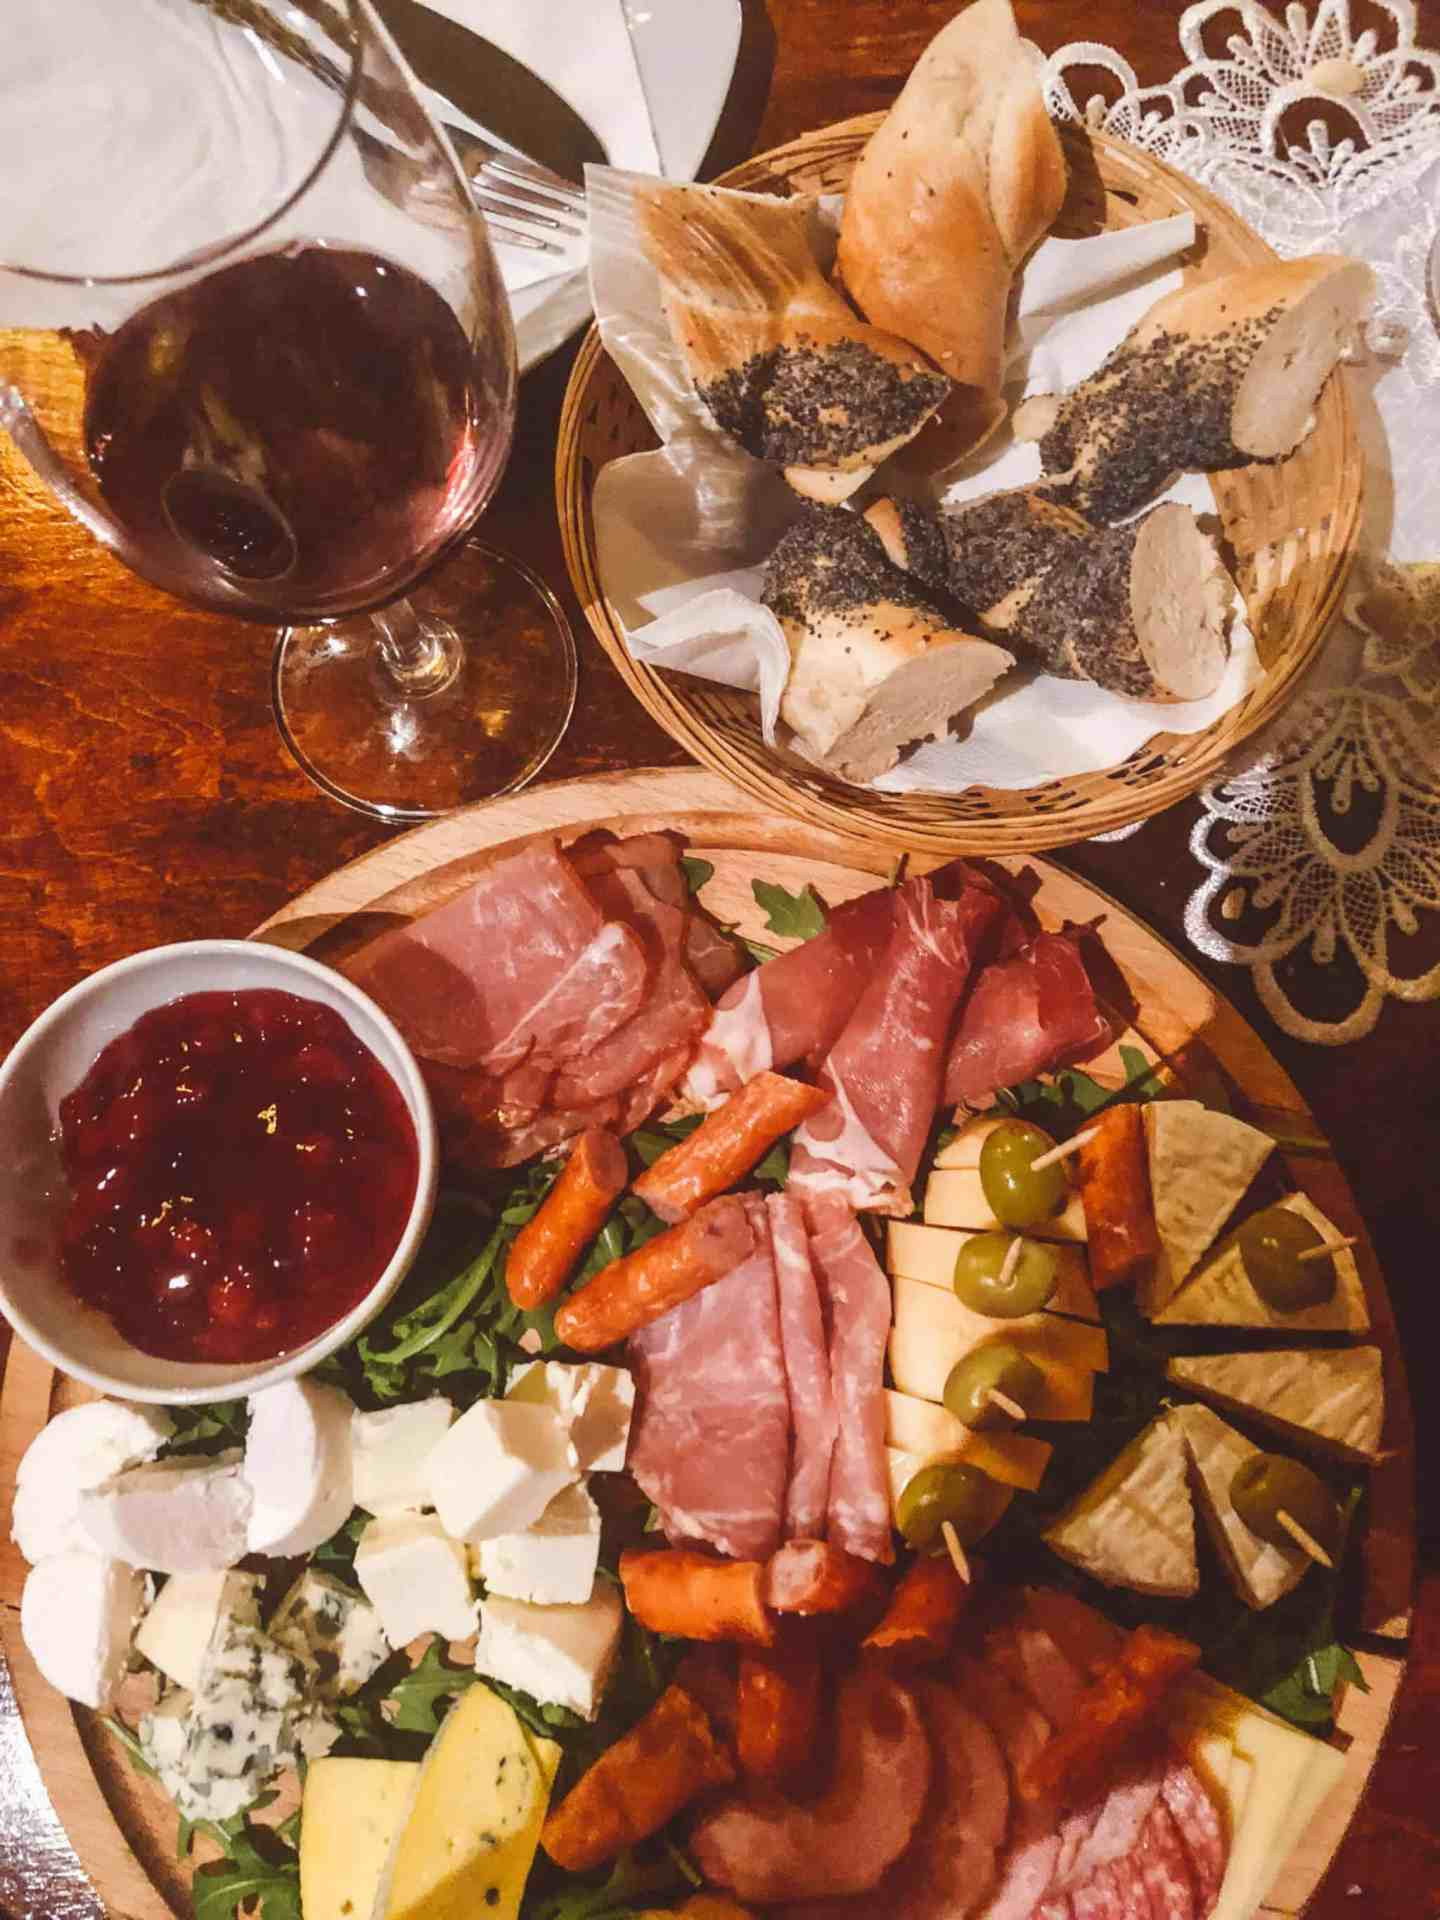 Charcutterie board and wine